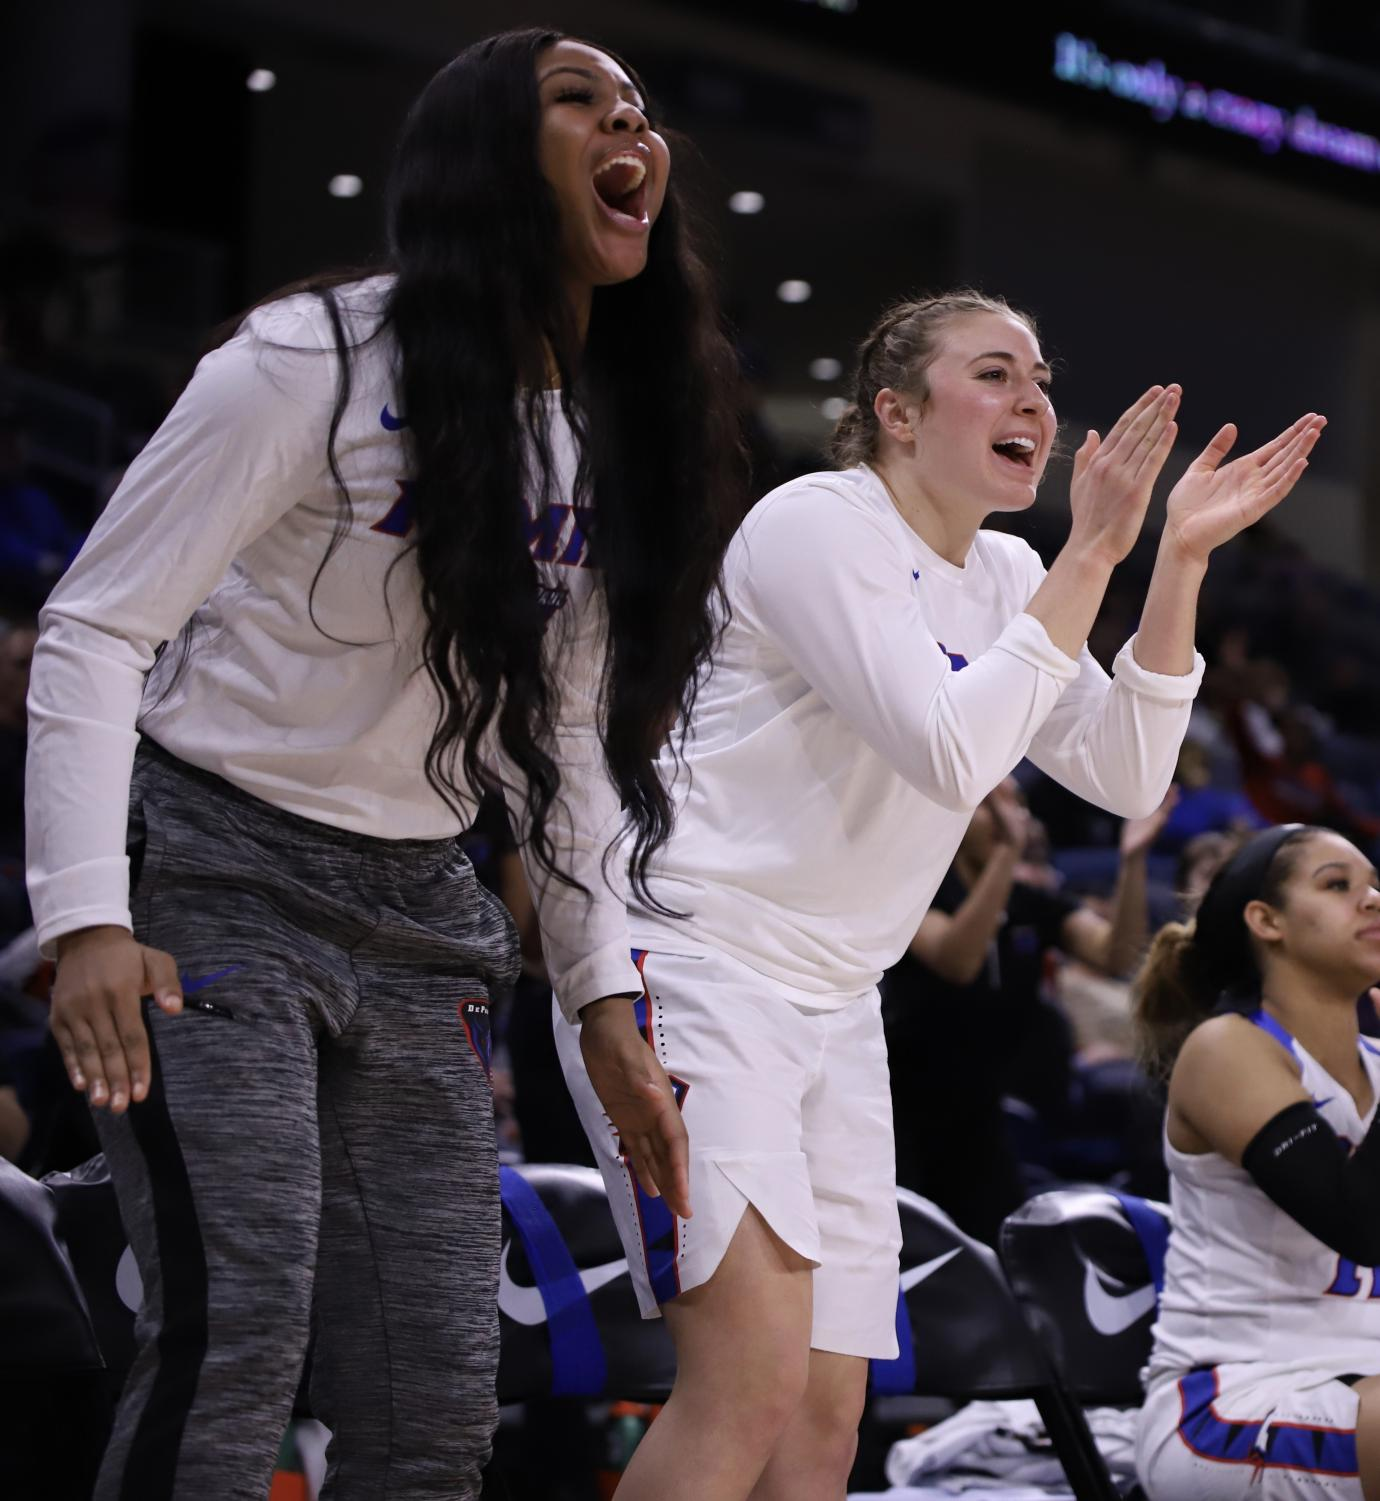 DePaul+freshman+forward+Dege+Jean+%28left%29+and+sophomore+guard+Jolene+Daninger+%28right%29+cheer+on+their+teammates+Monday+night+at+Wintrust+Arena.+The+Blue+Demons+advanced+to+the+Big+East+Tournament+championship+game+with+an+80-69+victory+over+Creighton.+Alexa+Sandler+%7C+The+DePaulia